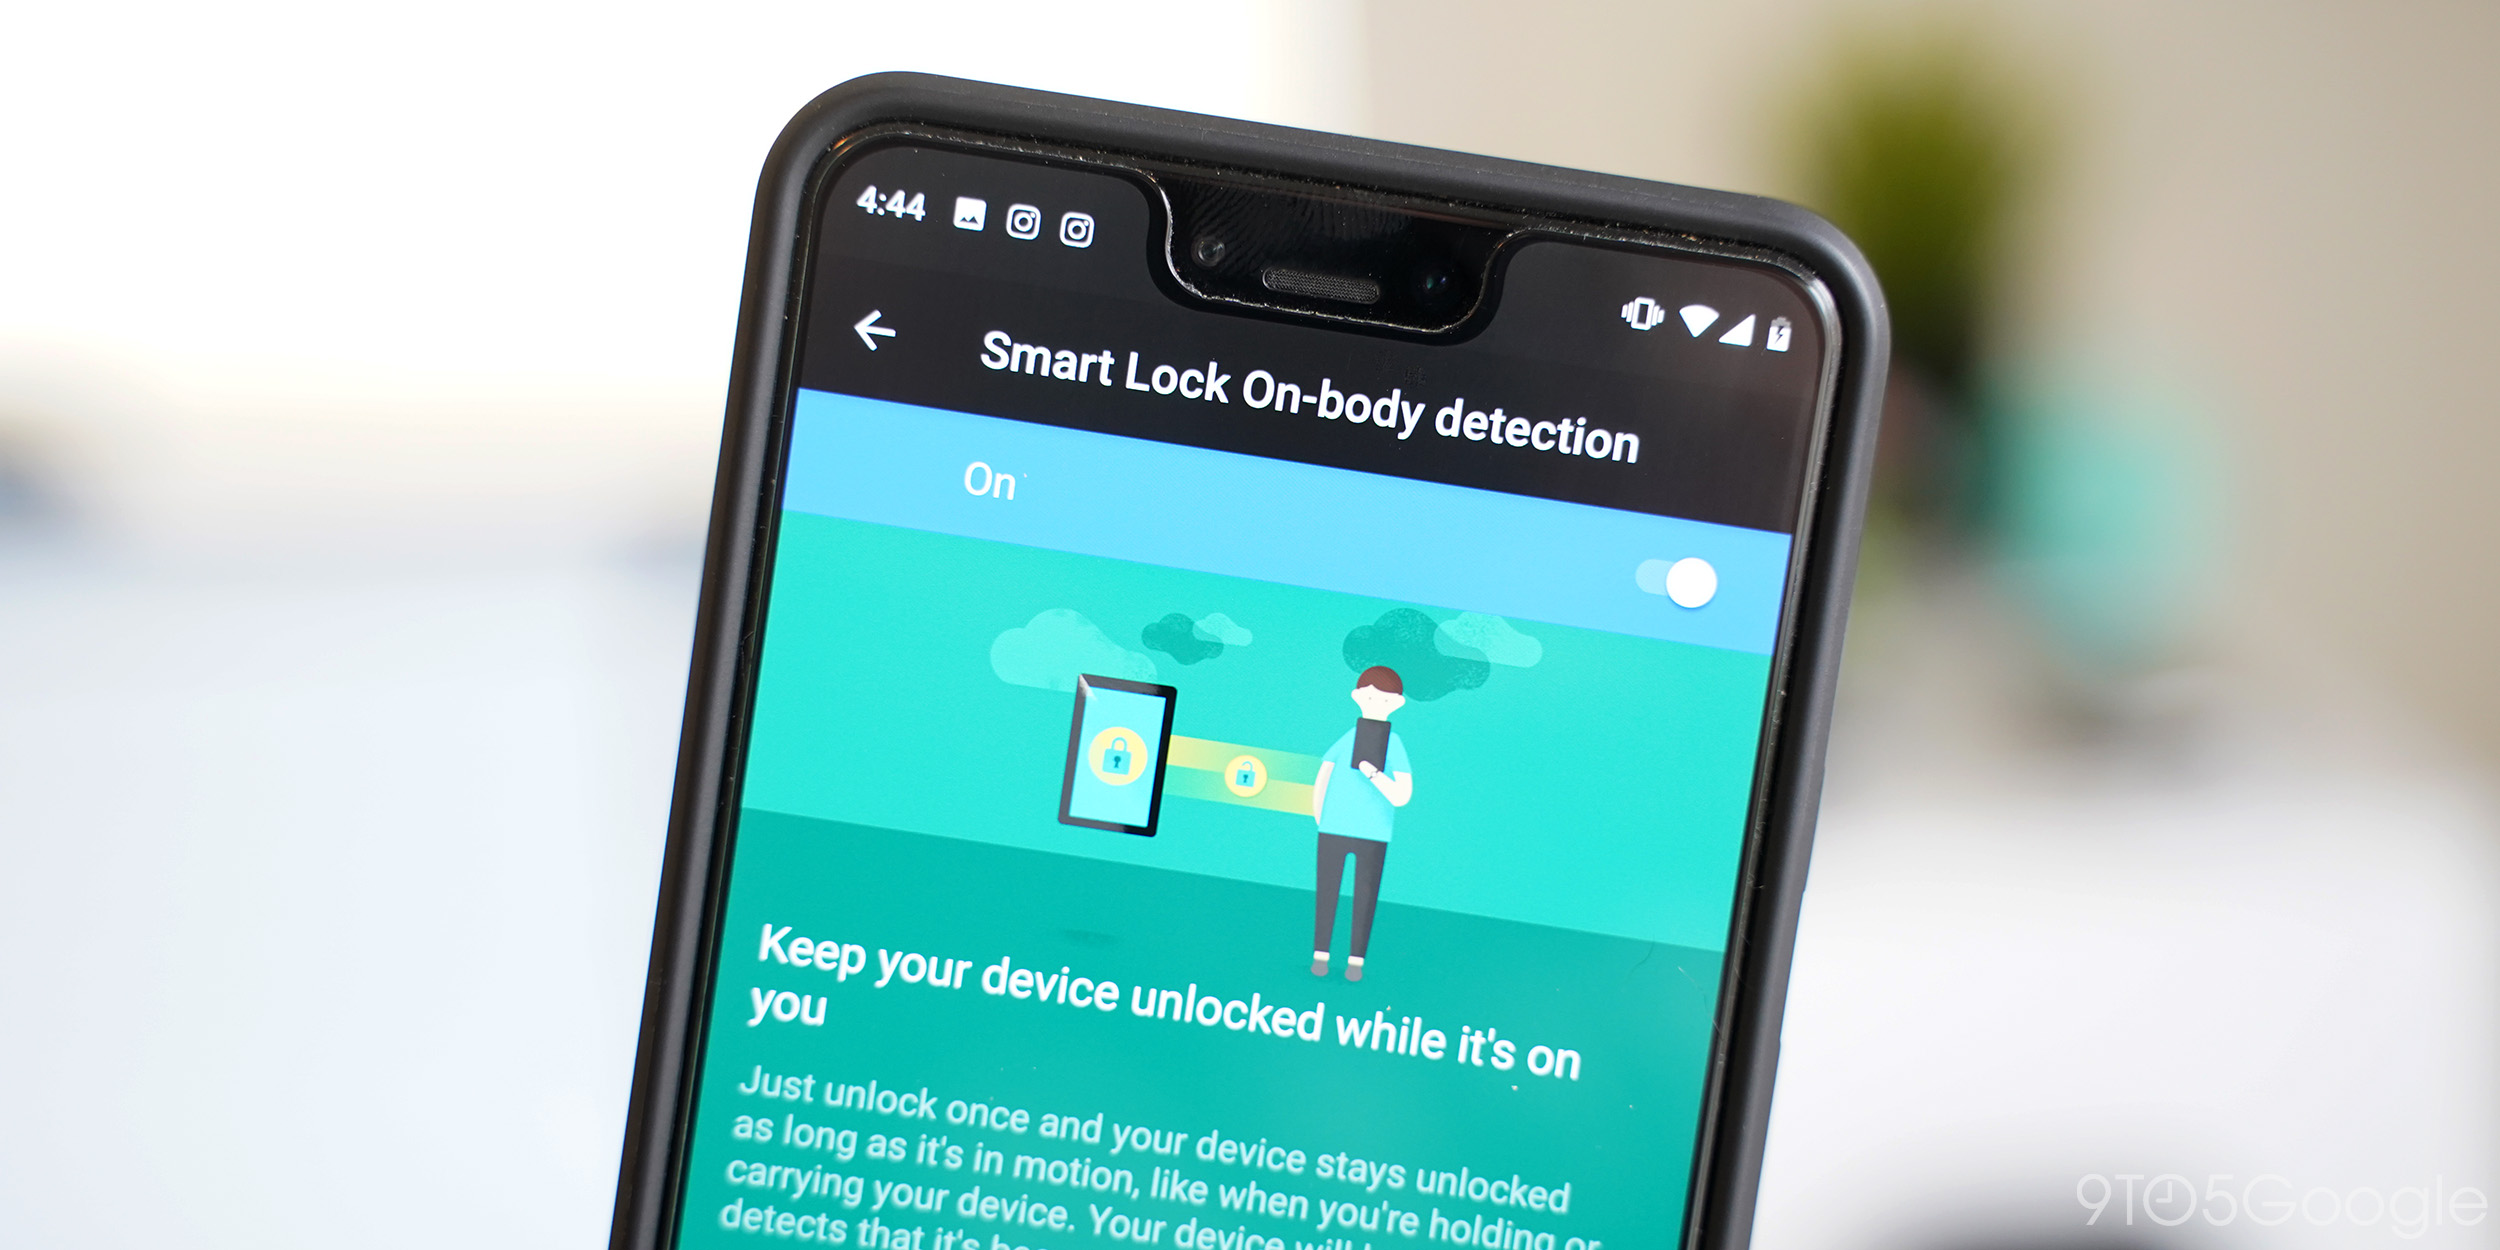 PSA: Smart Lock on-body detection leaves your Android device unlocked longer while charging